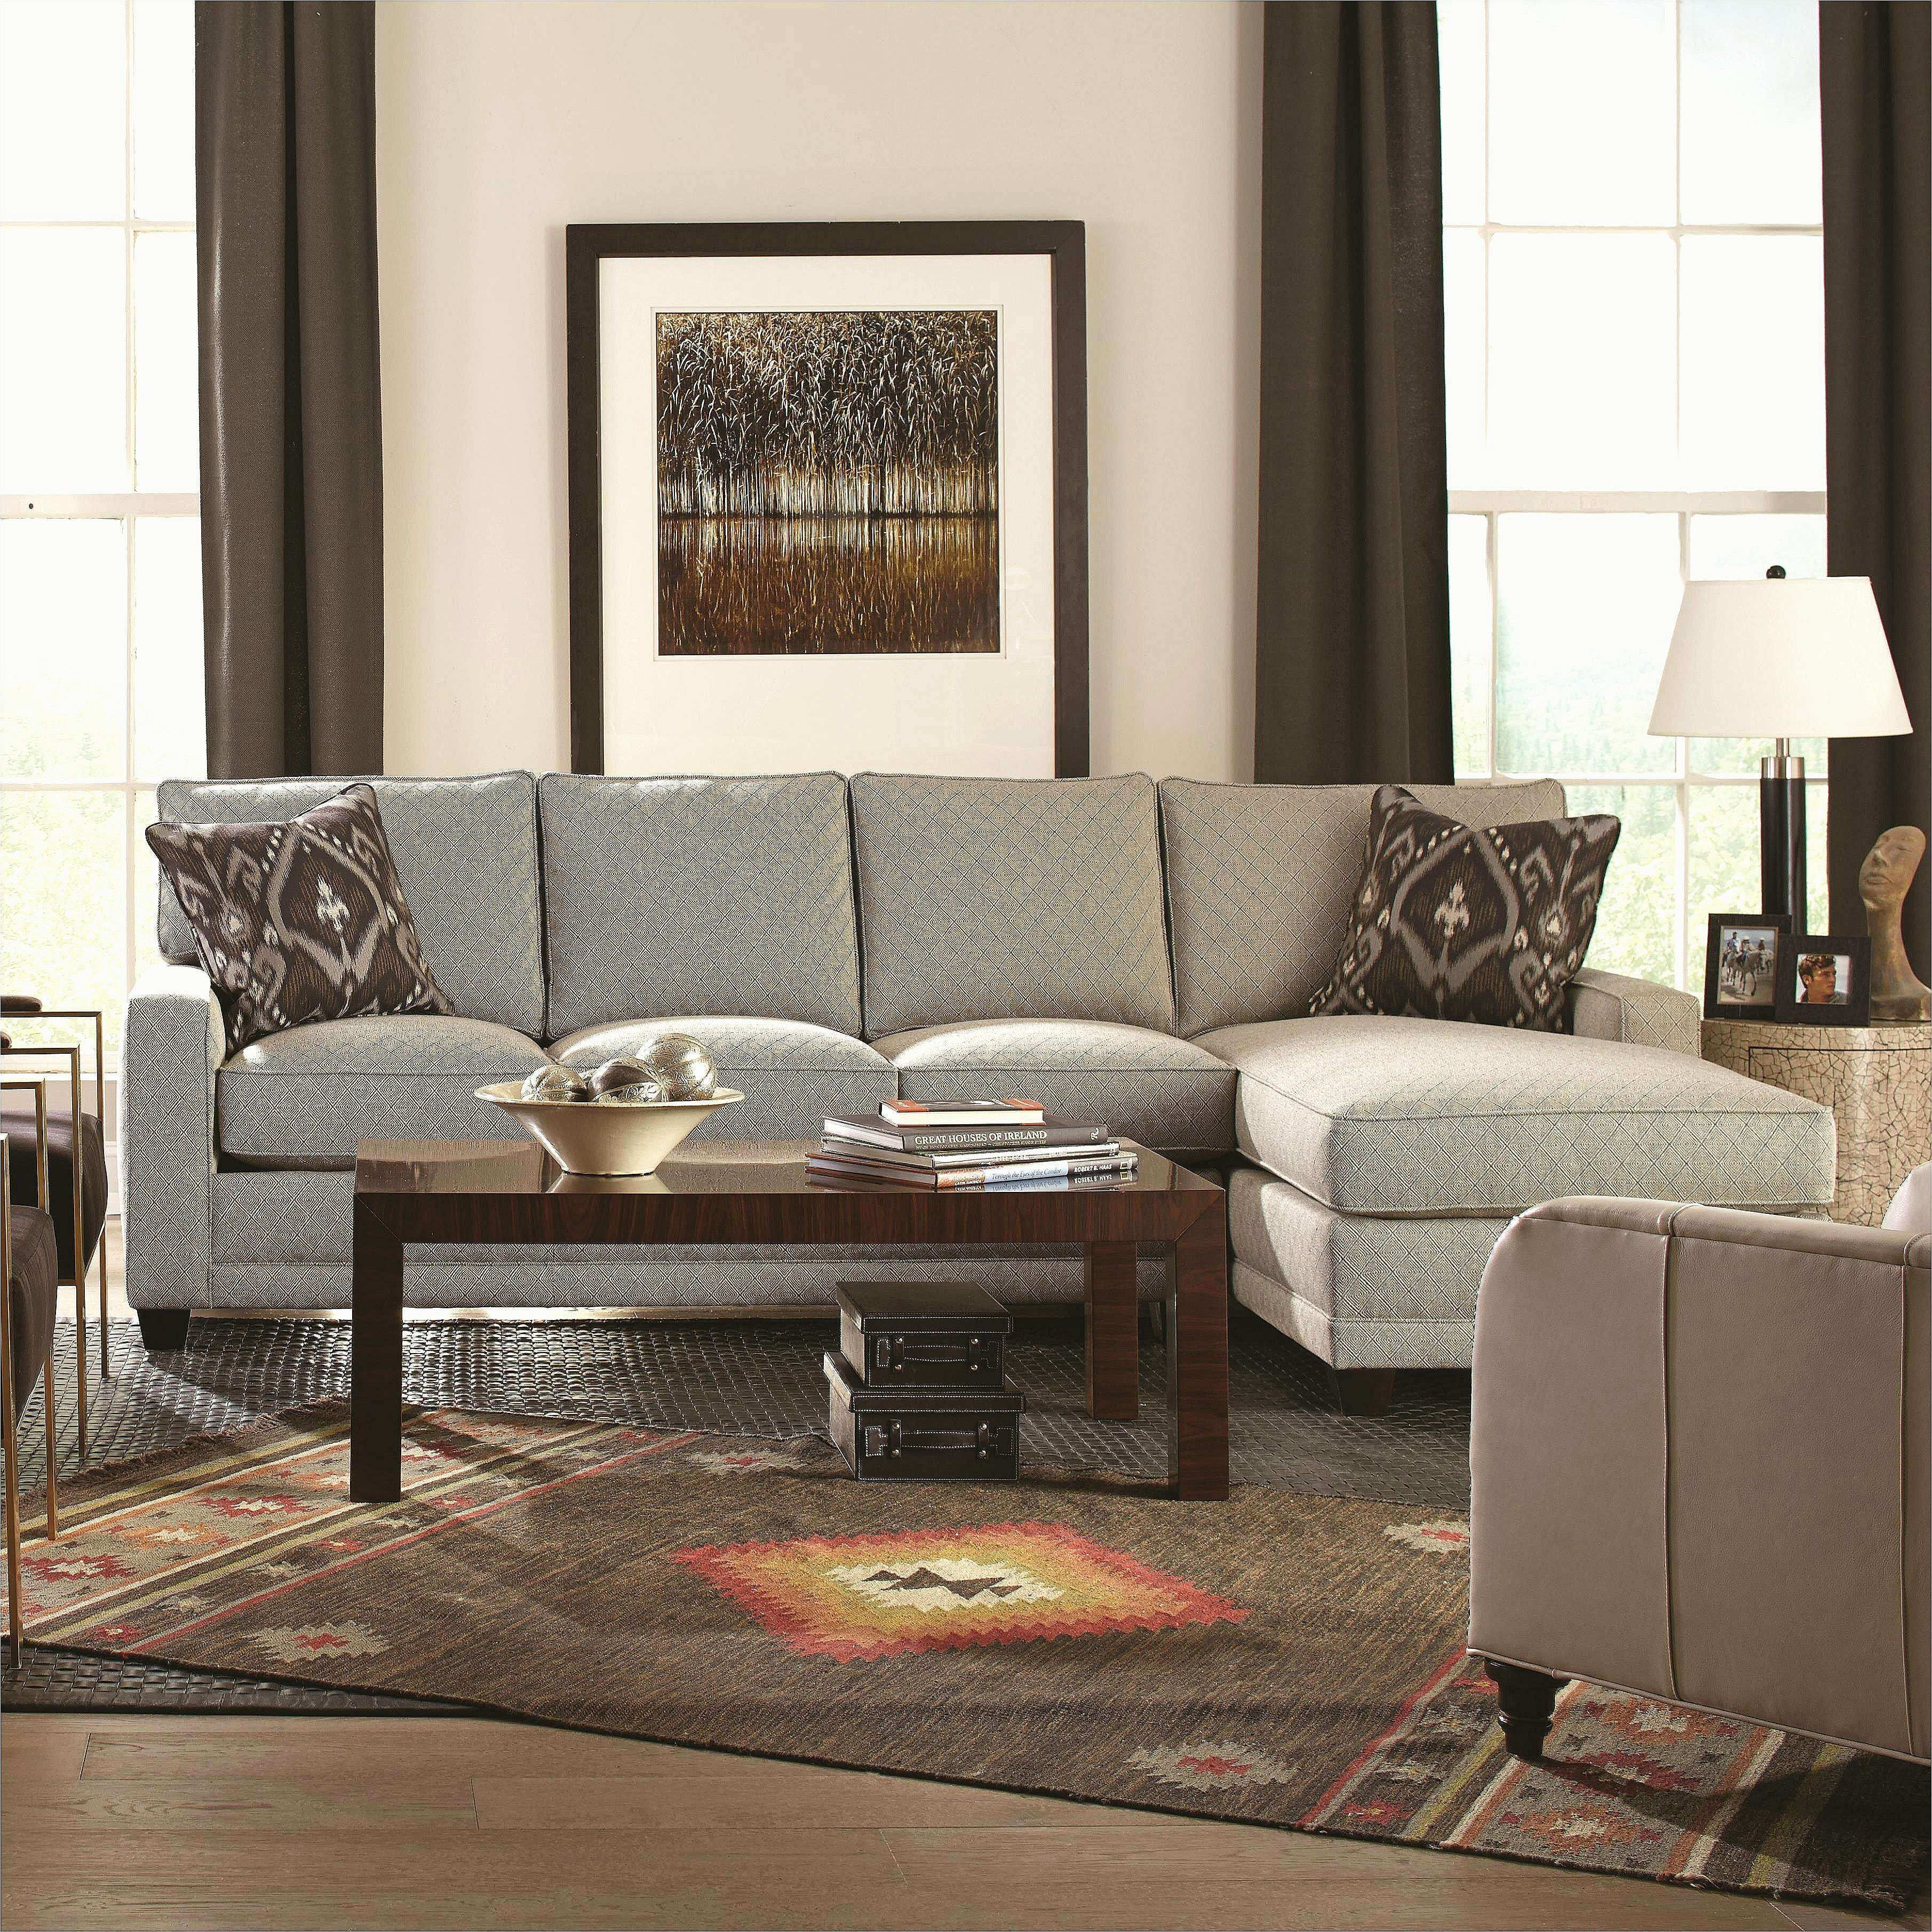 Family Living Room Wall Decor Awesome 46 Collection Decorating Ideas